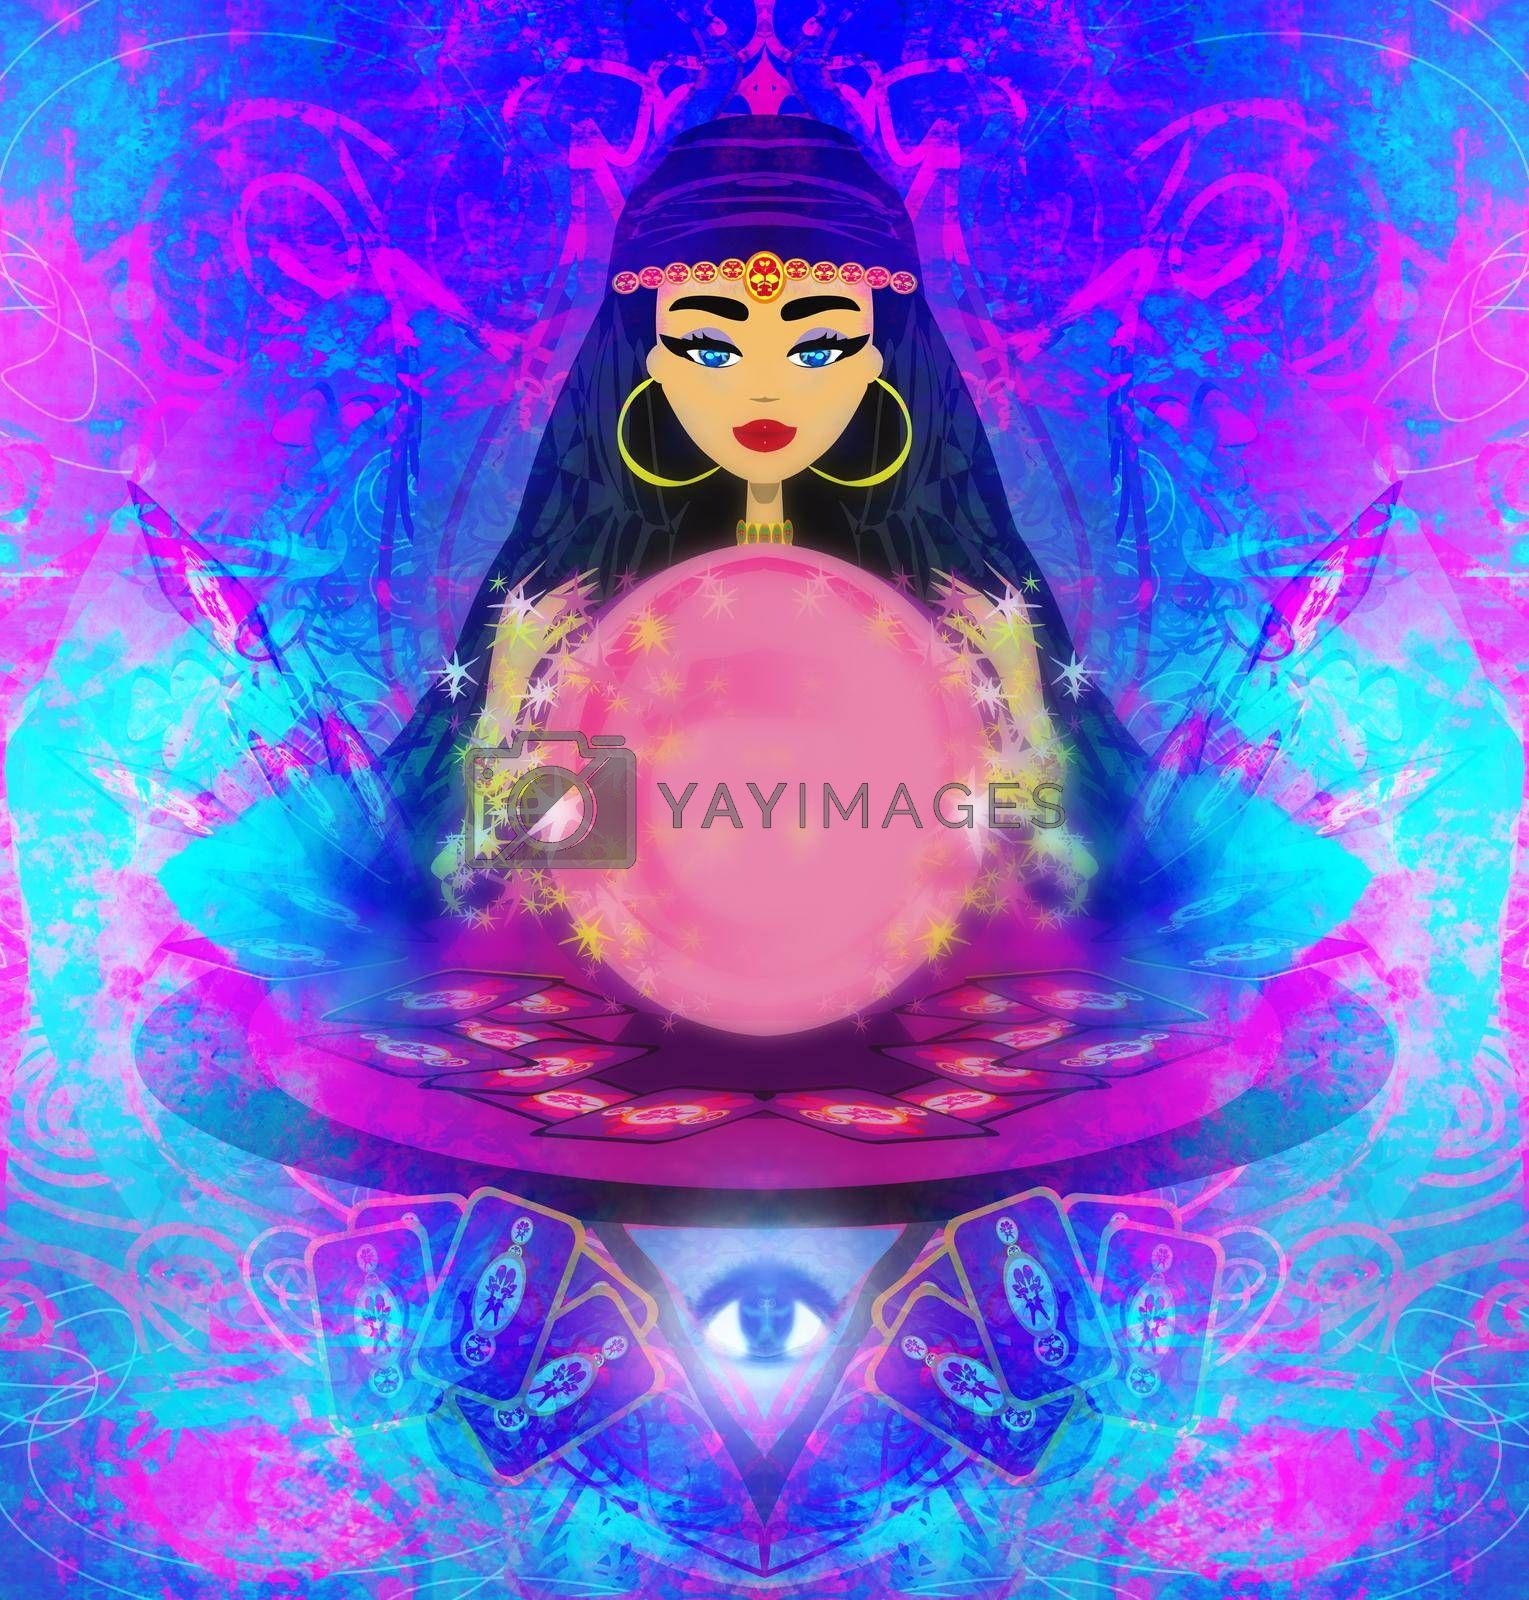 Royalty free image of Fortune teller woman with tarot cards and a crystal ball by JackyBrown